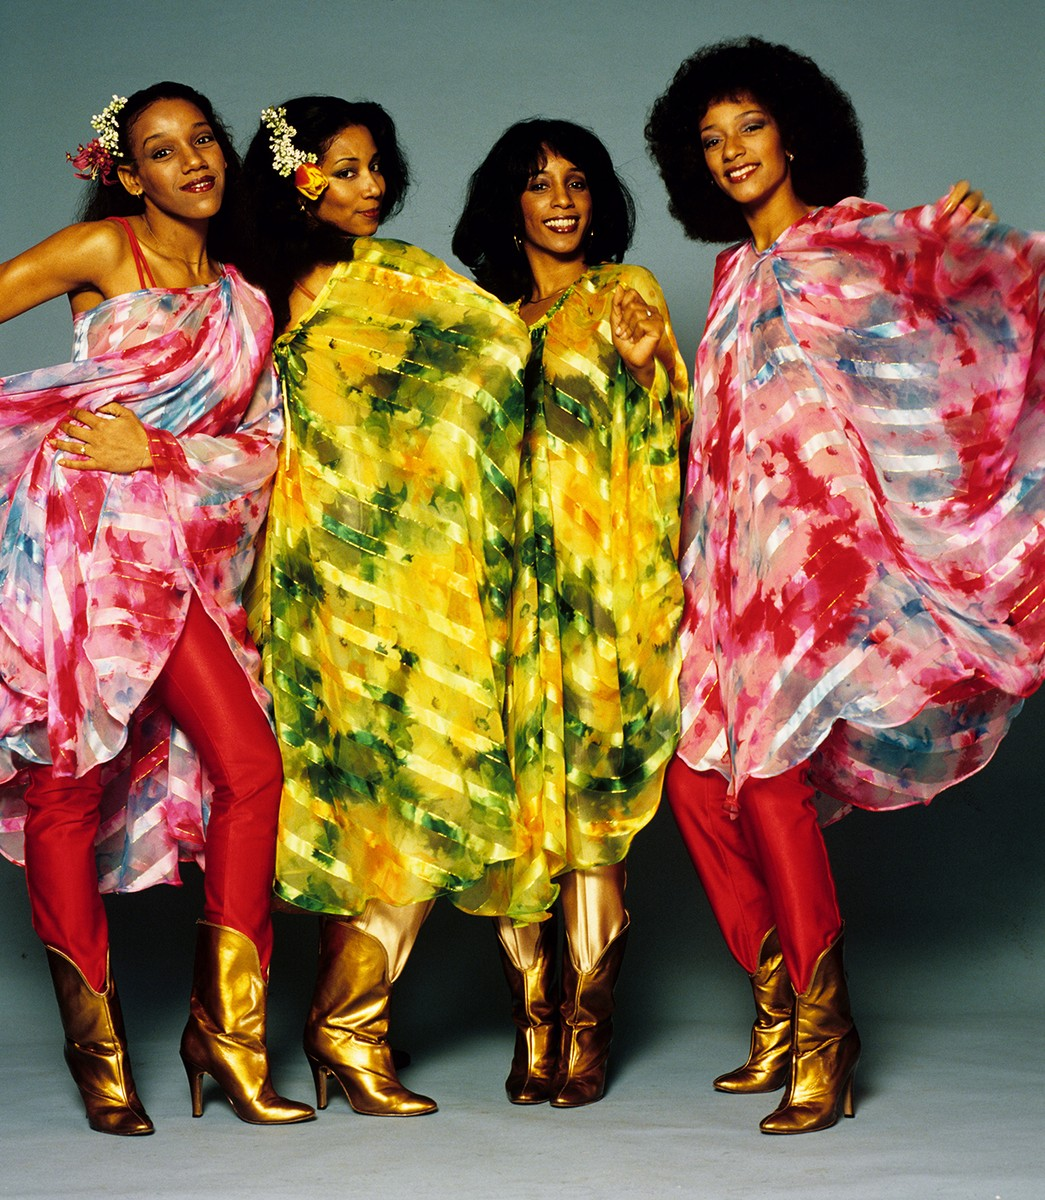 Sister Sledge pose for a portrait in 1980 in the Netherlands.